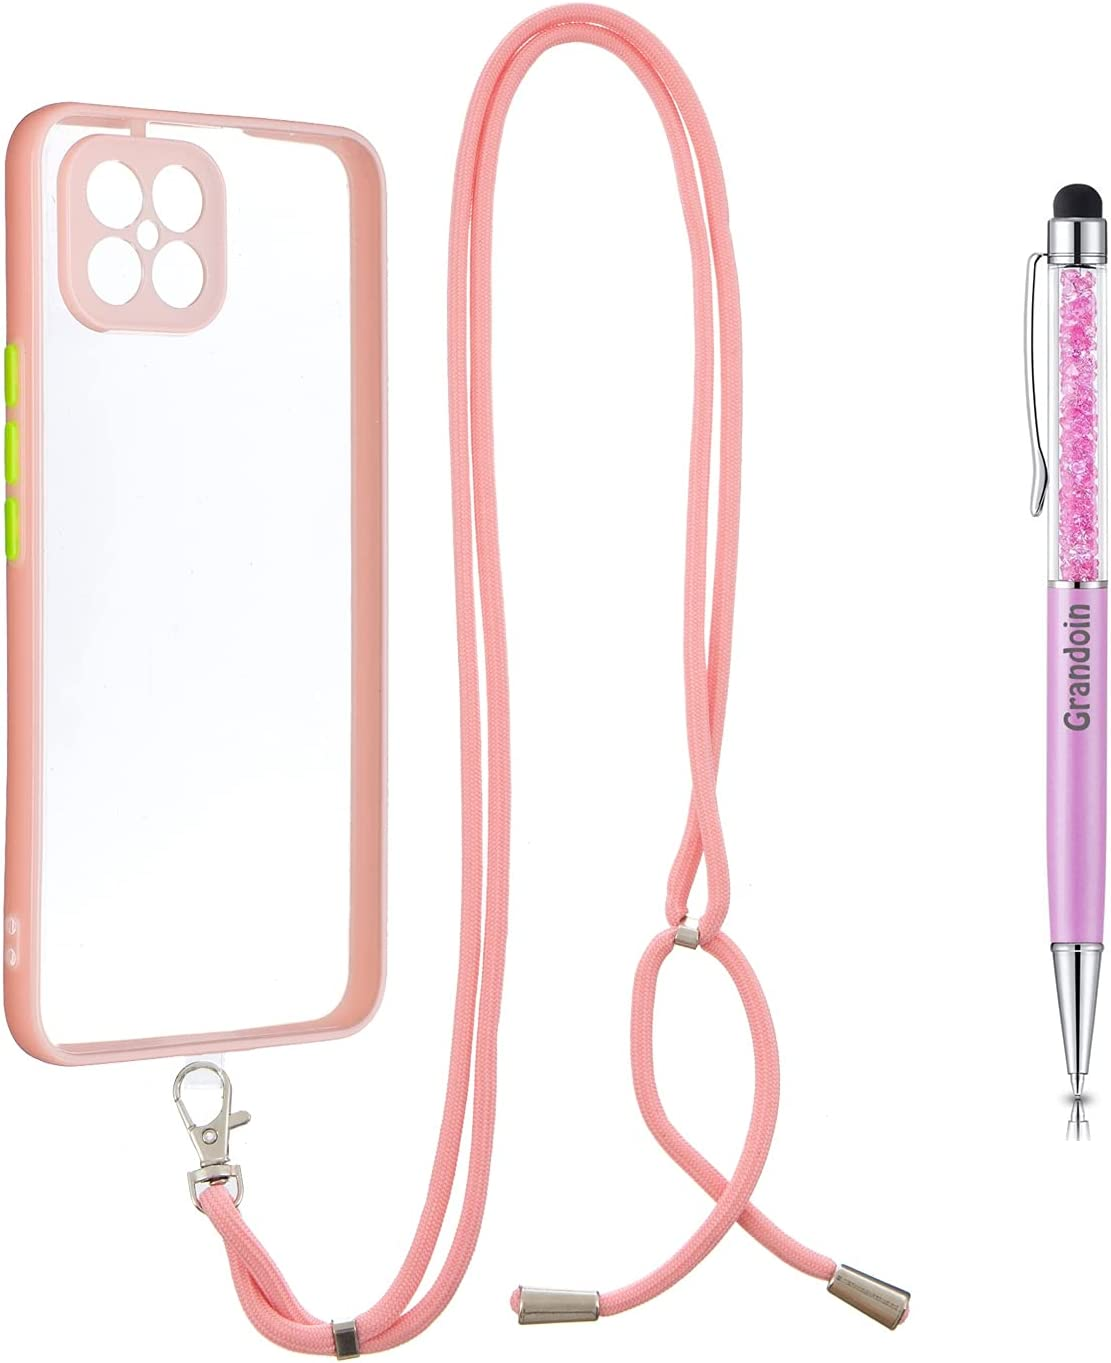 Grandoin Crossbody Case for Huawei Nova 8 Se, Lanyard Case Necklace Mobile Phone Cover with Adjustable Cord Strap, Clear Transparent TPU Cover Holder with Neck Cord Lanyard Strap (Pink)